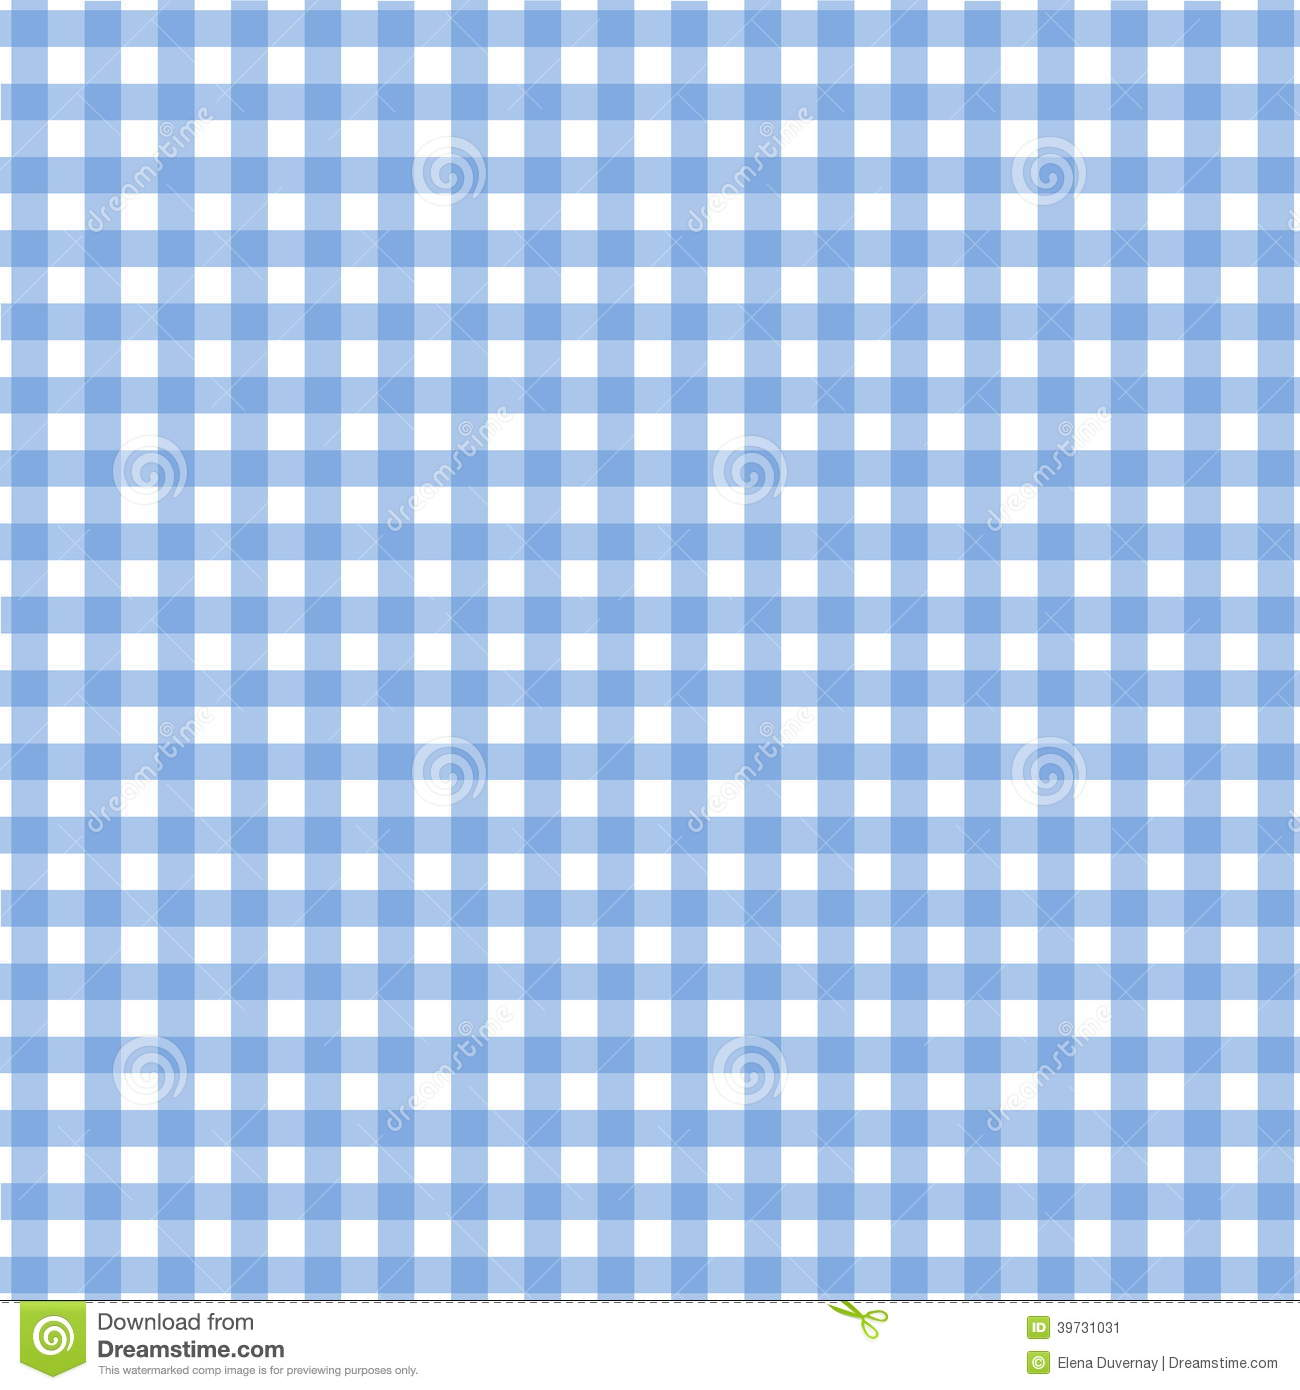 Blue square pattern background - photo#28